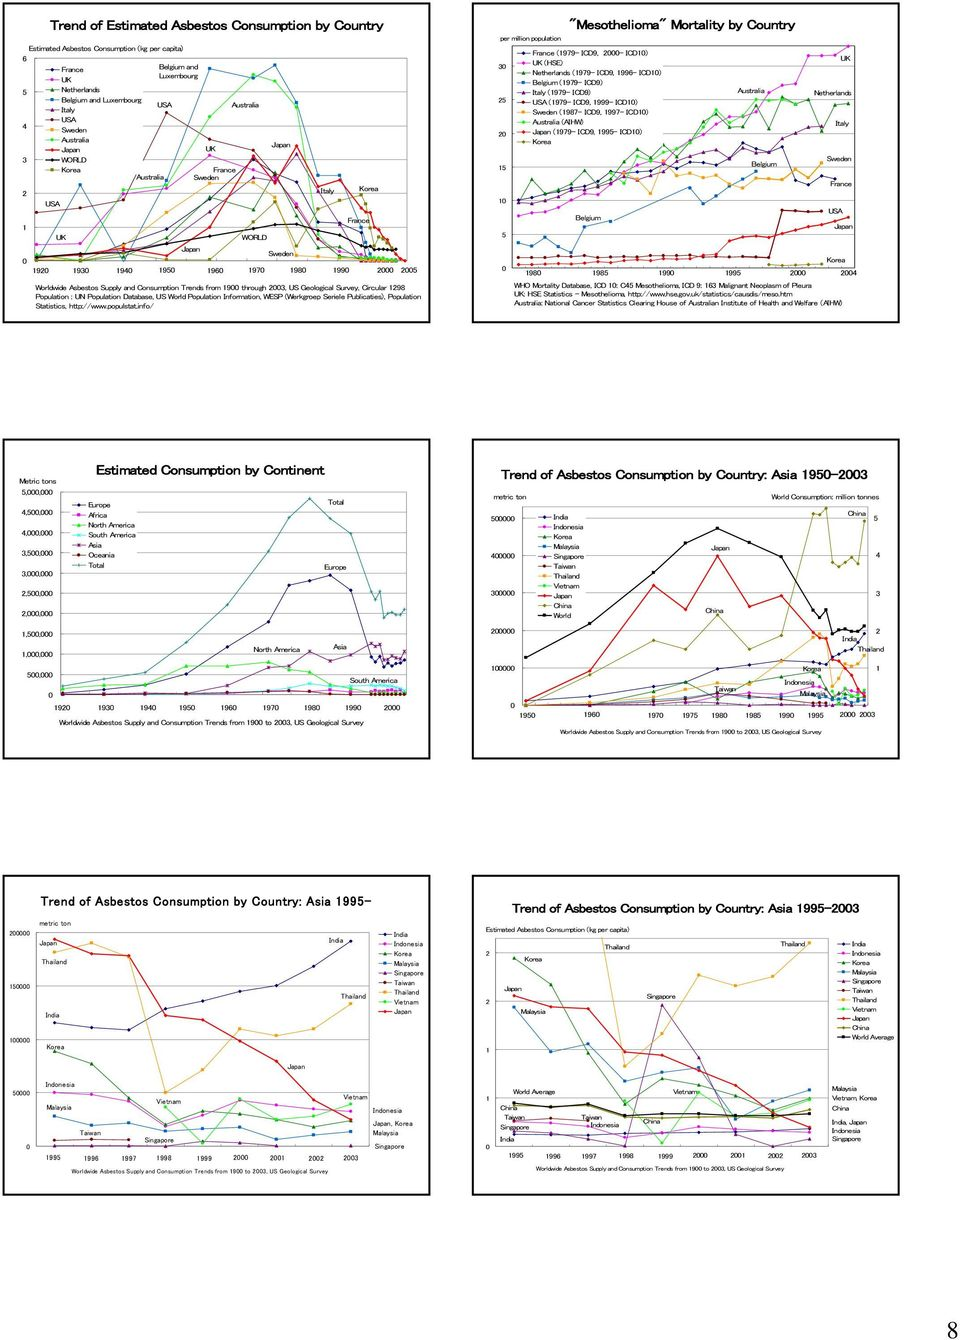 Supply and Consumption Trends from 9 through 3, US Geological Survey, Circular 98 Population : UN Population Database, US World Population Information, WESP (Werkgroep Seriele Publicaties),